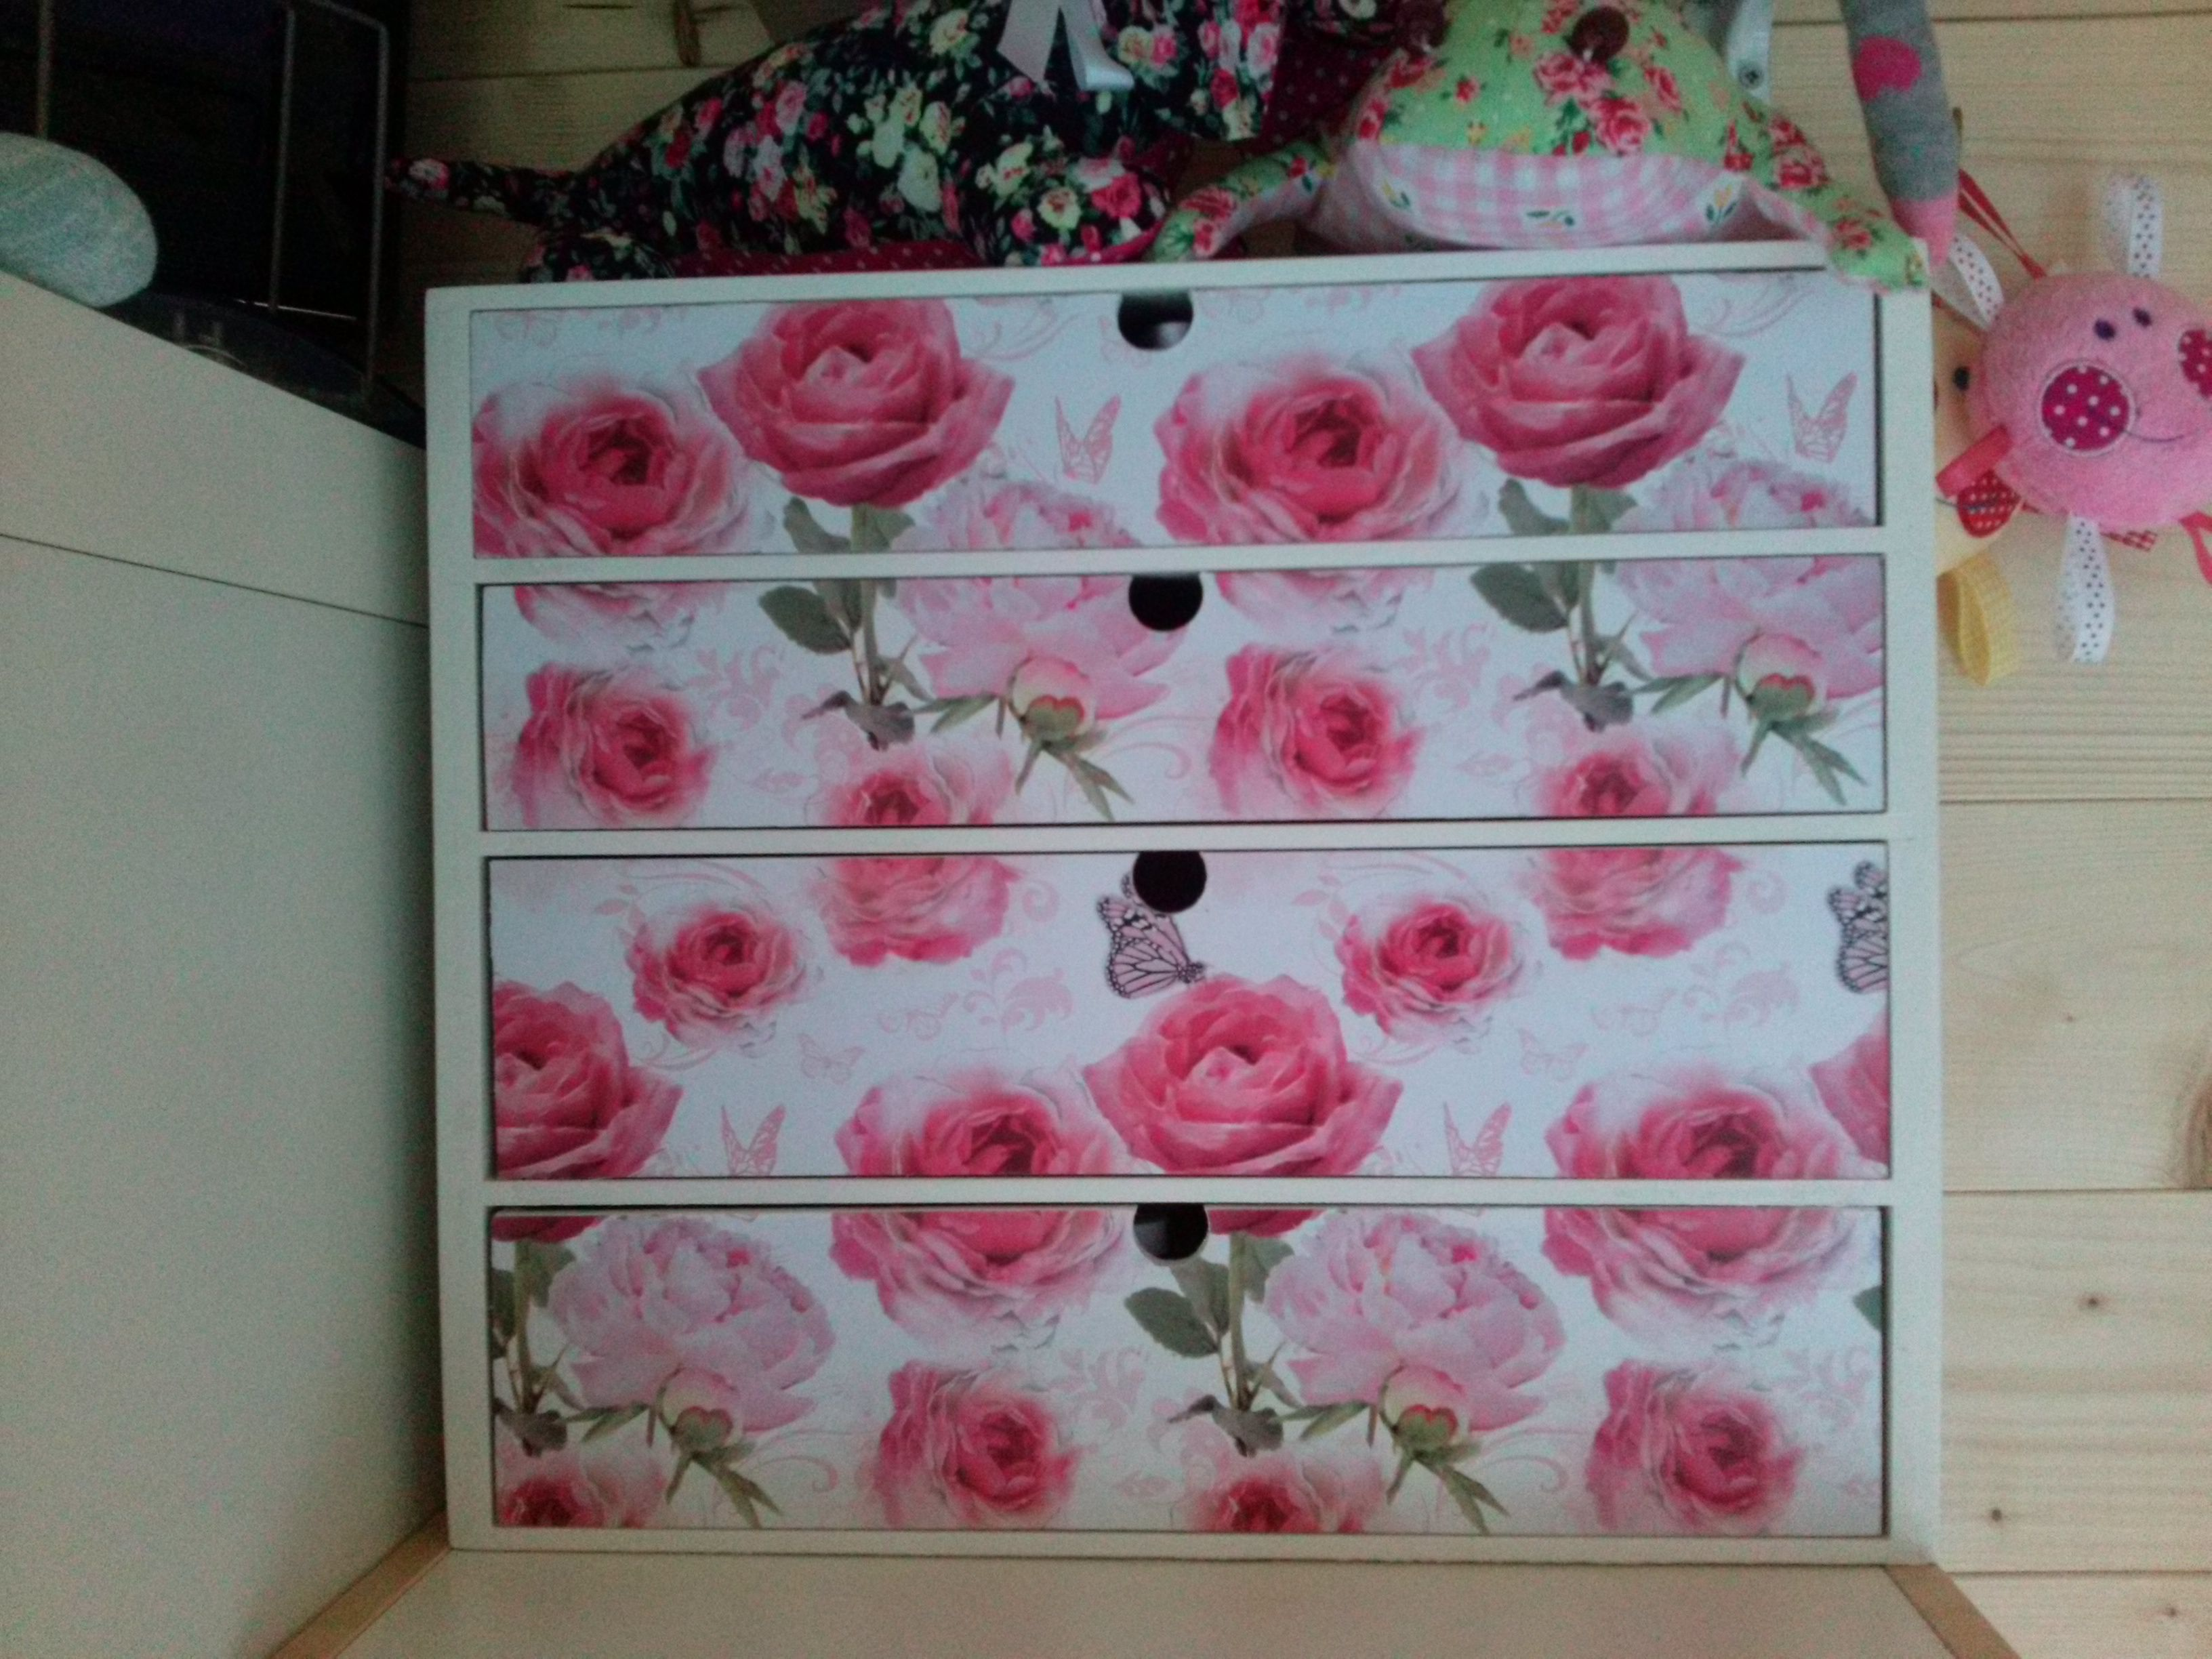 Embroidery thread storage solution. Decoupage and painted mdf drawers.